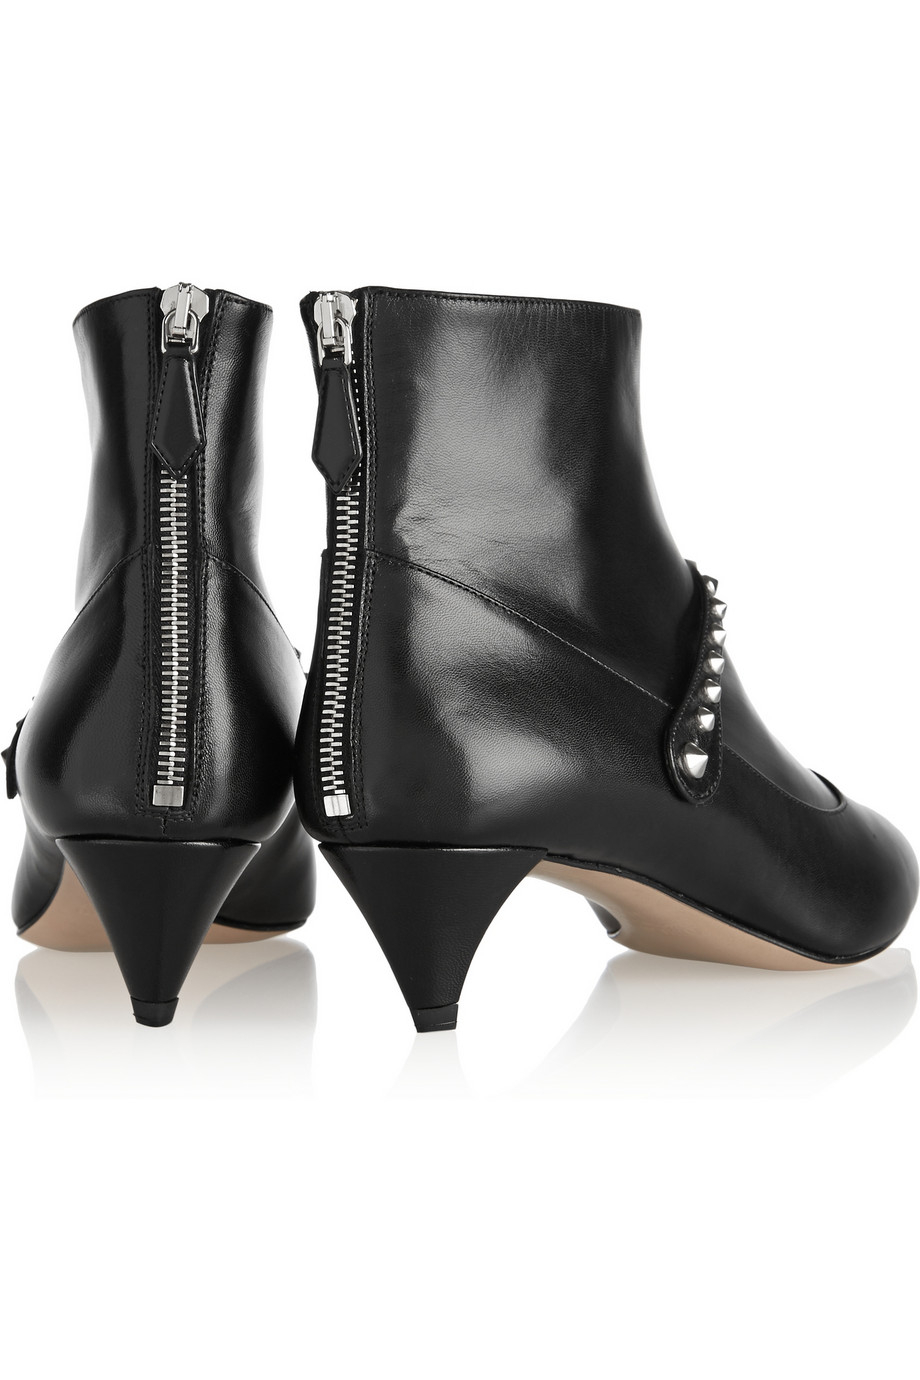 where can i order clearance in China Miu Miu Leather Spiked Boots popular for sale free shipping best wholesale Z6Gv5Fzov